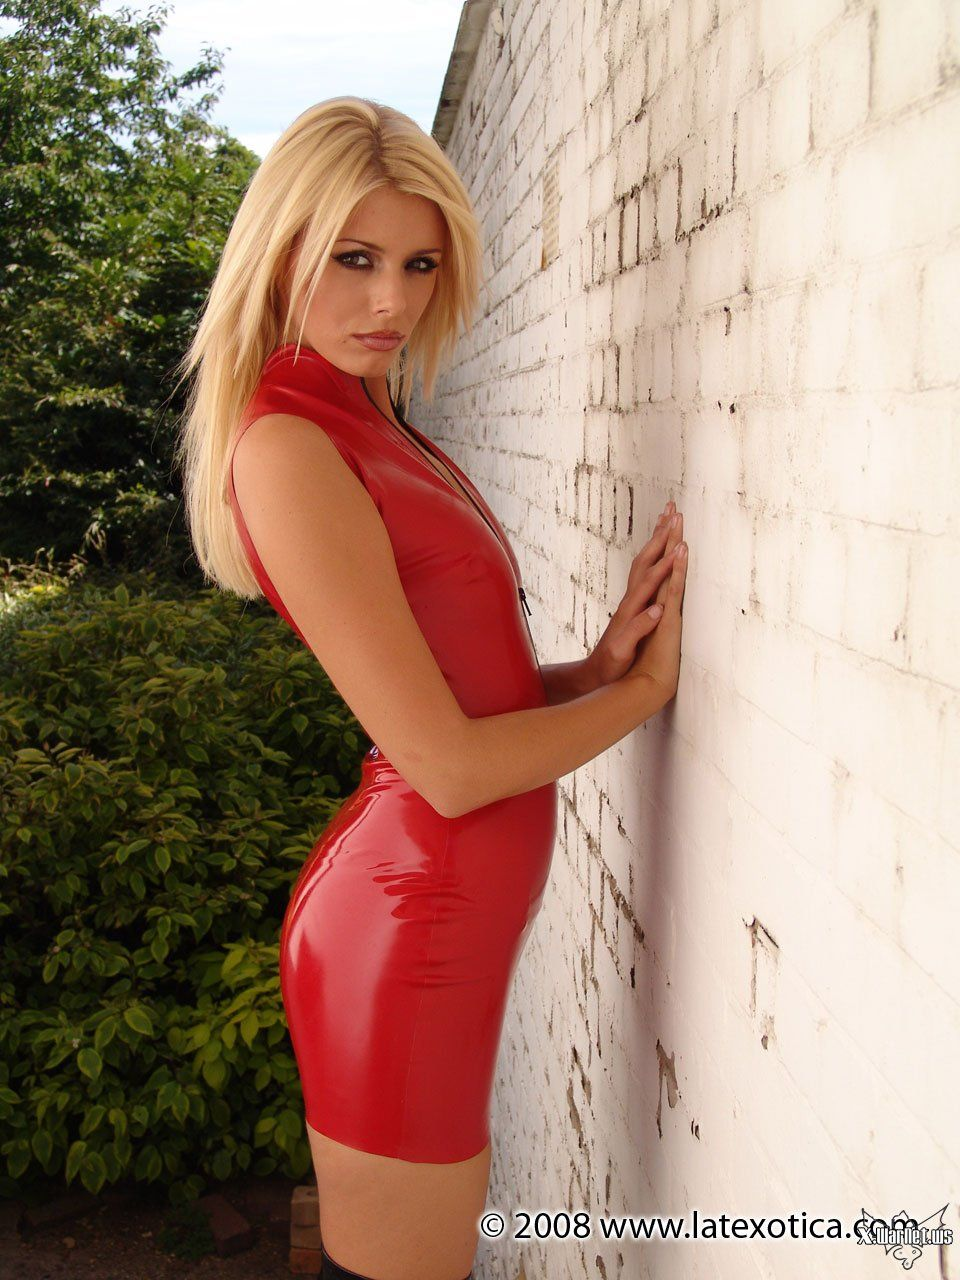 Alicia/ Simone Linsell . Red latex Dress. | Photo Inspiration: Girl ...